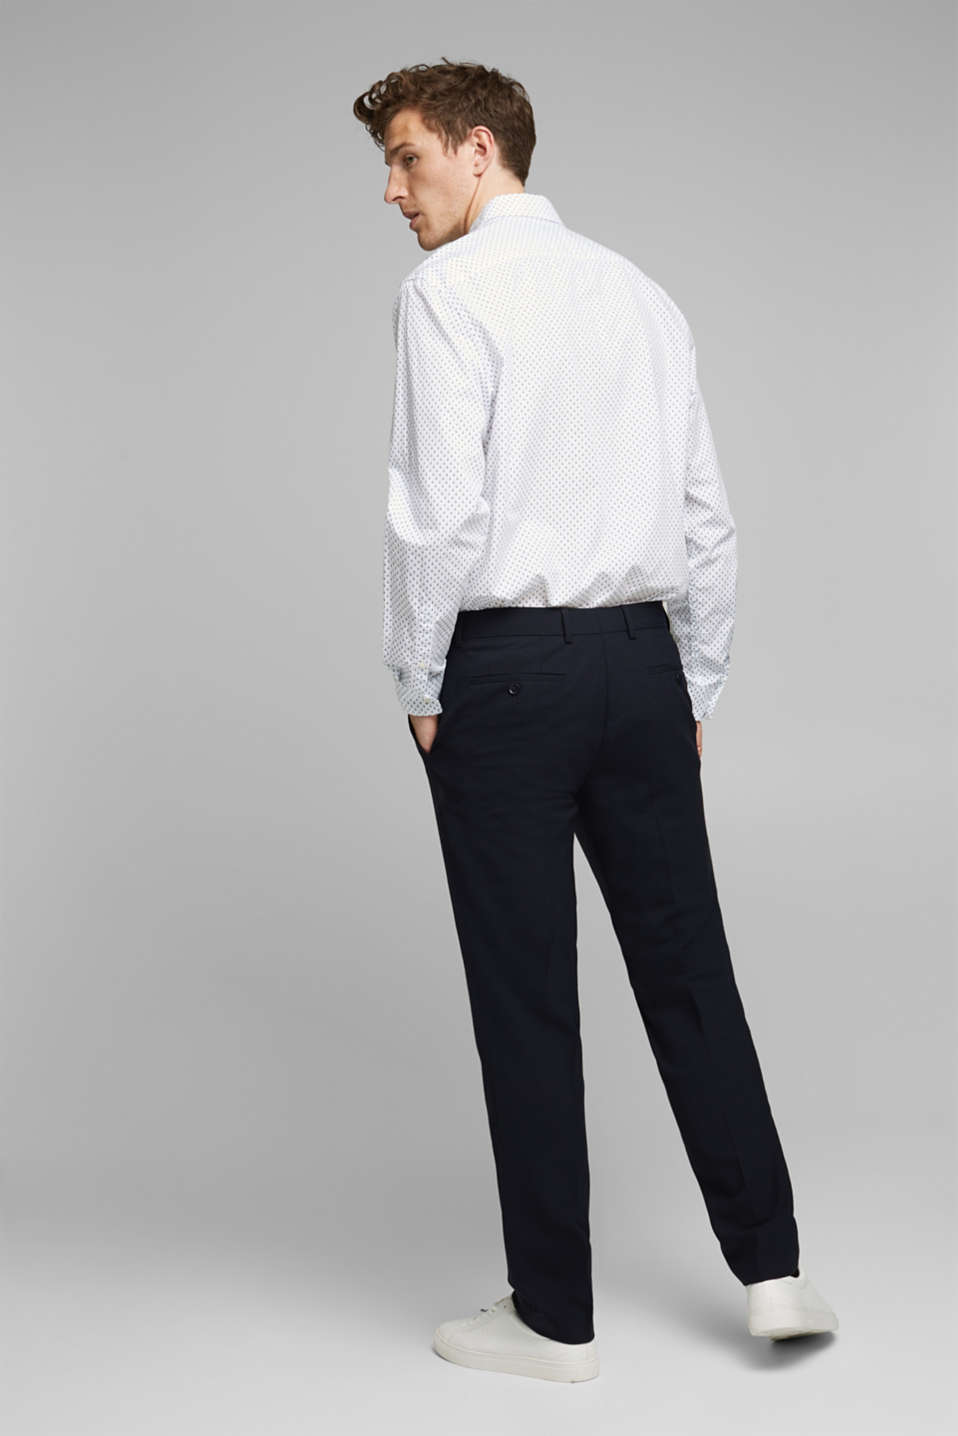 ACTIVE SUIT trousers made of blended wool, DARK BLUE, detail image number 1